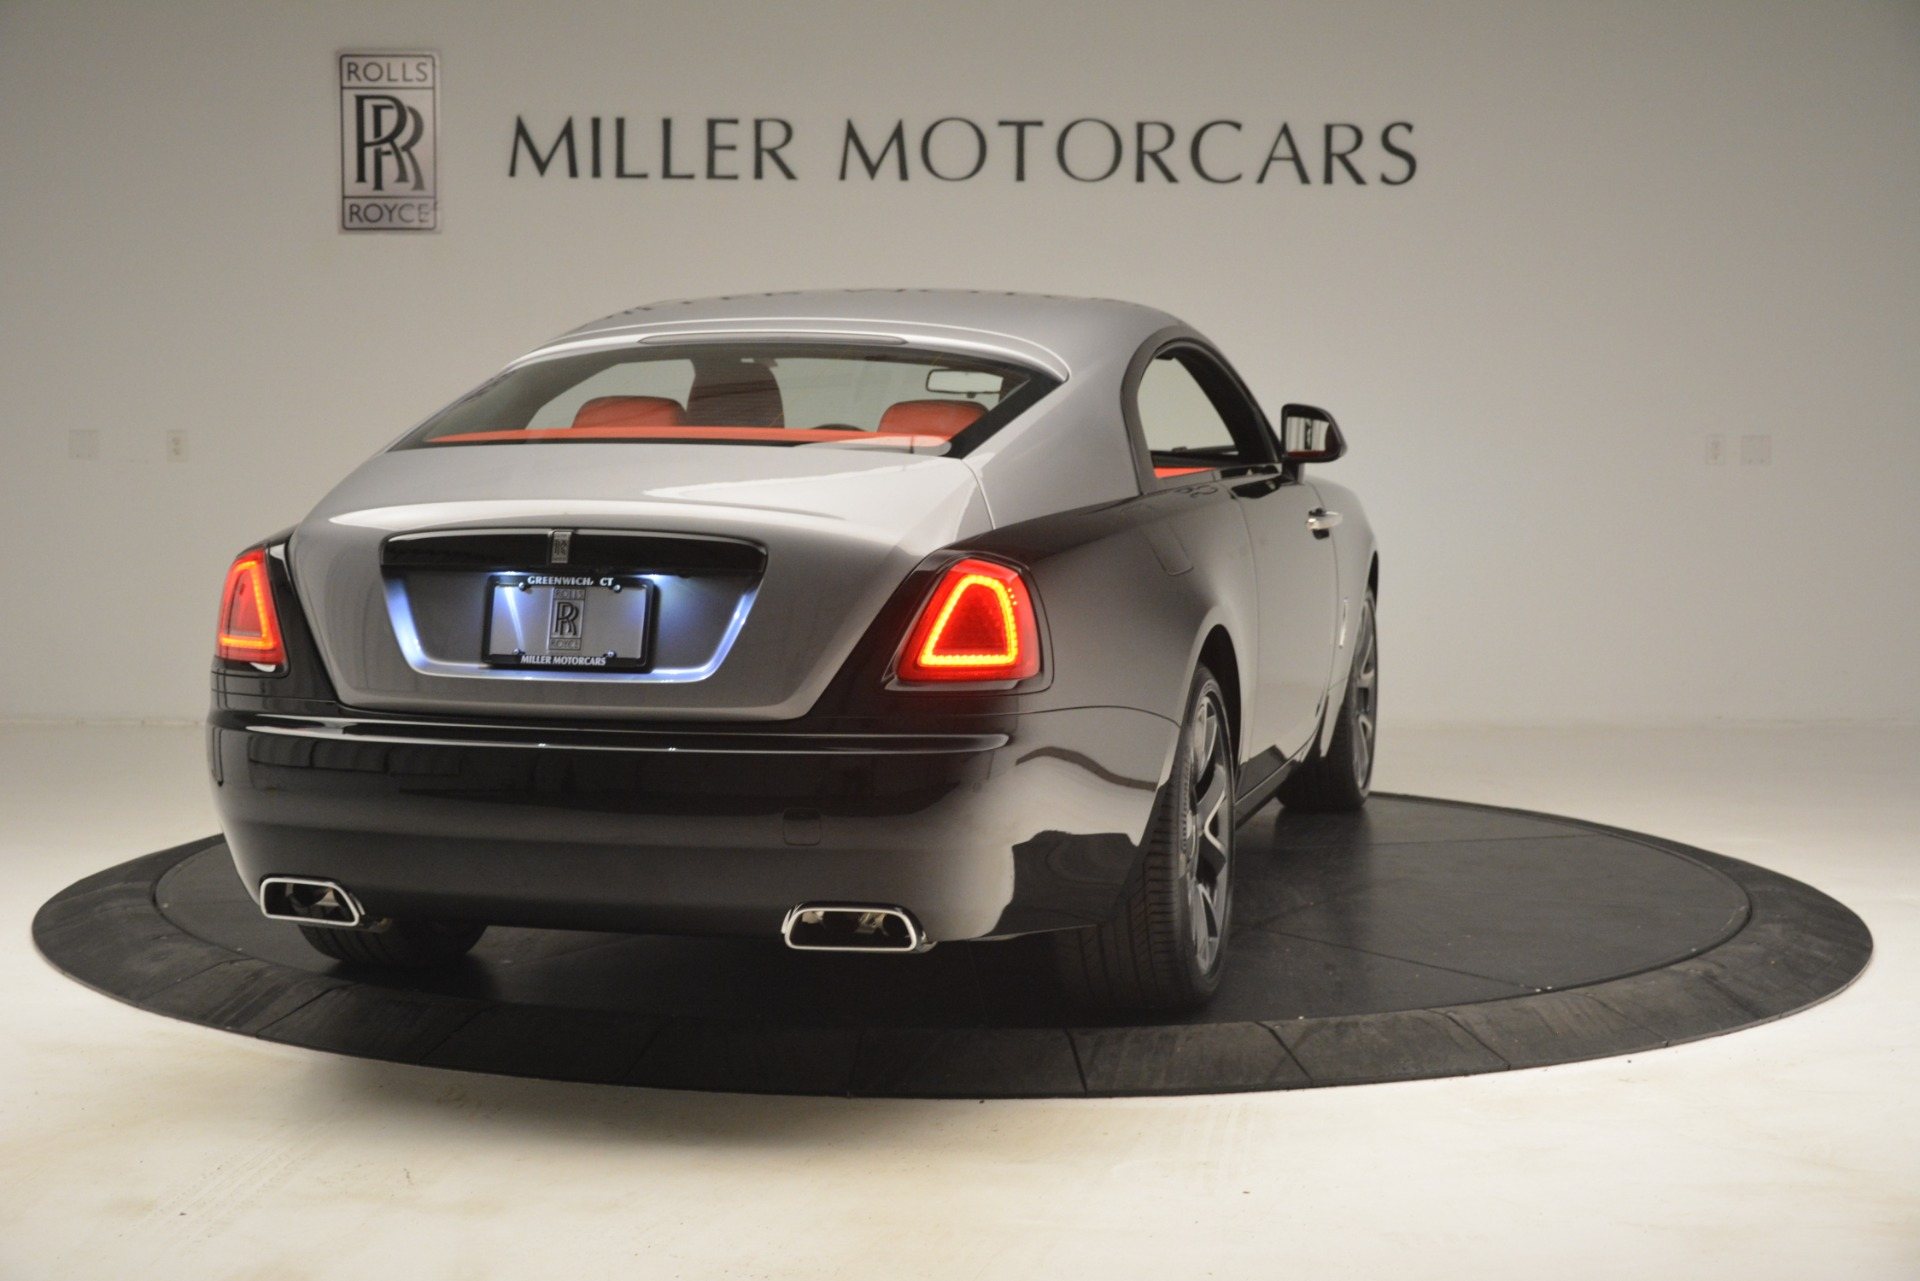 New 2019 Rolls-Royce Wraith  For Sale In Greenwich, CT 2687_p9